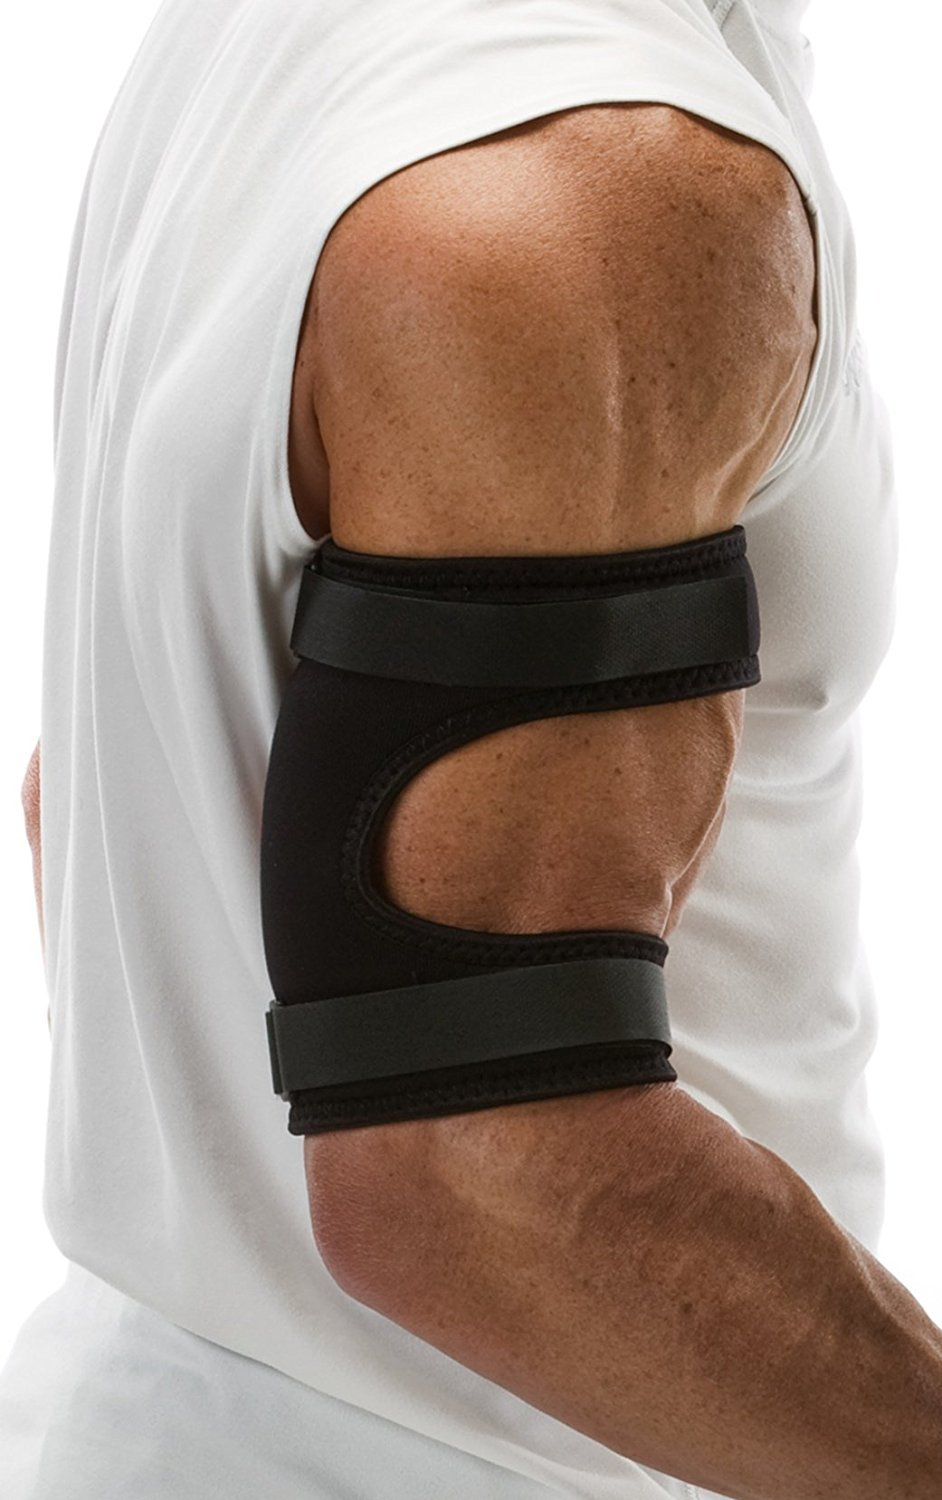 Cho-Pat Bicep/Tricep Cuff - Eases and Prevents Bicep/Tricep Strain, Injury, and Pain (Bicep/Tricep Tendonitis, Pulling and Tearing of Tendons, Inflammation) - Large (11''-12.5'')